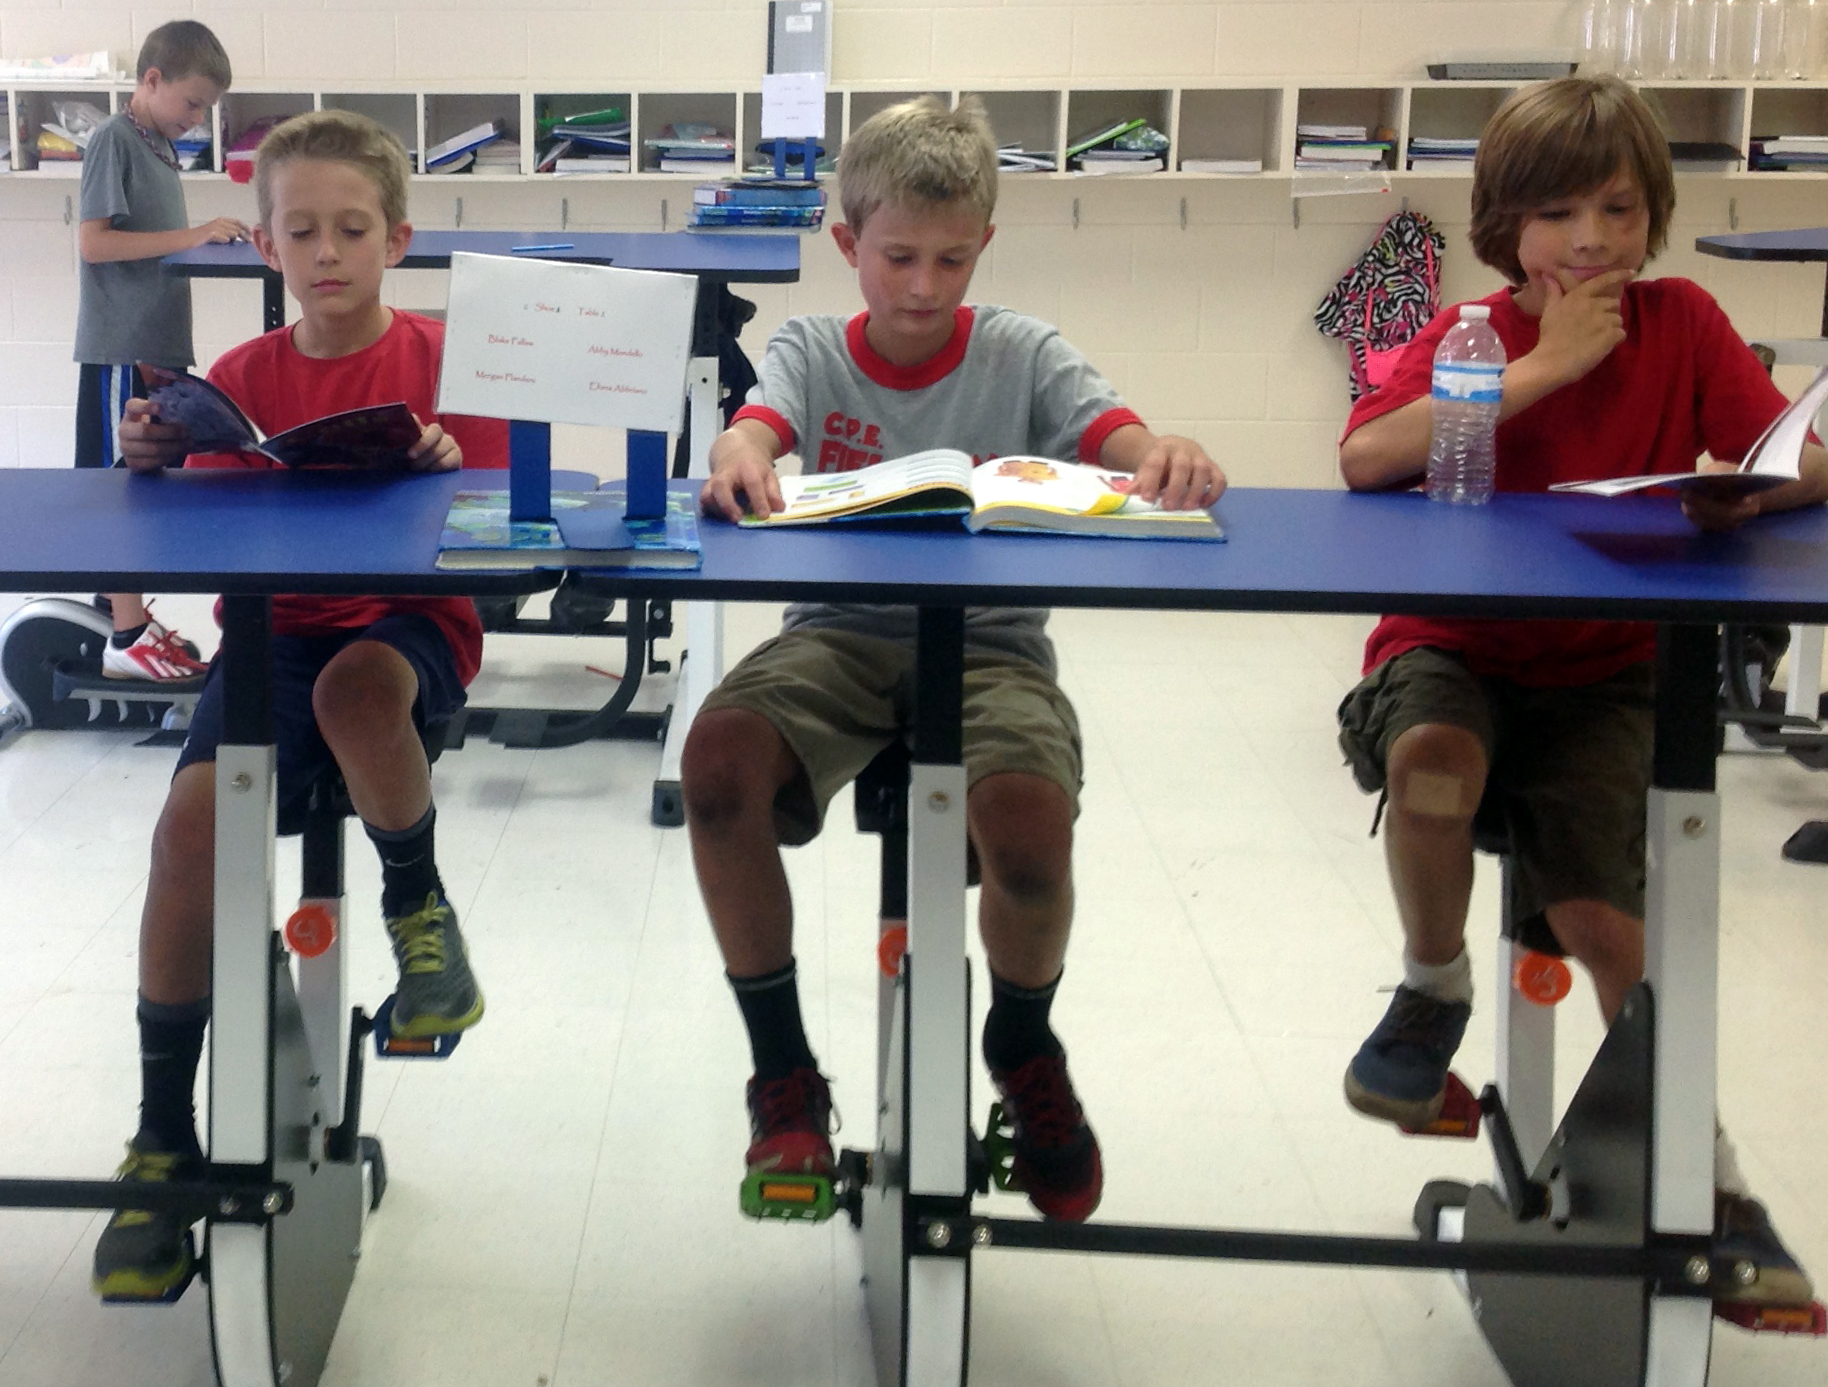 Why Exercise Desks Could Help Children Learn